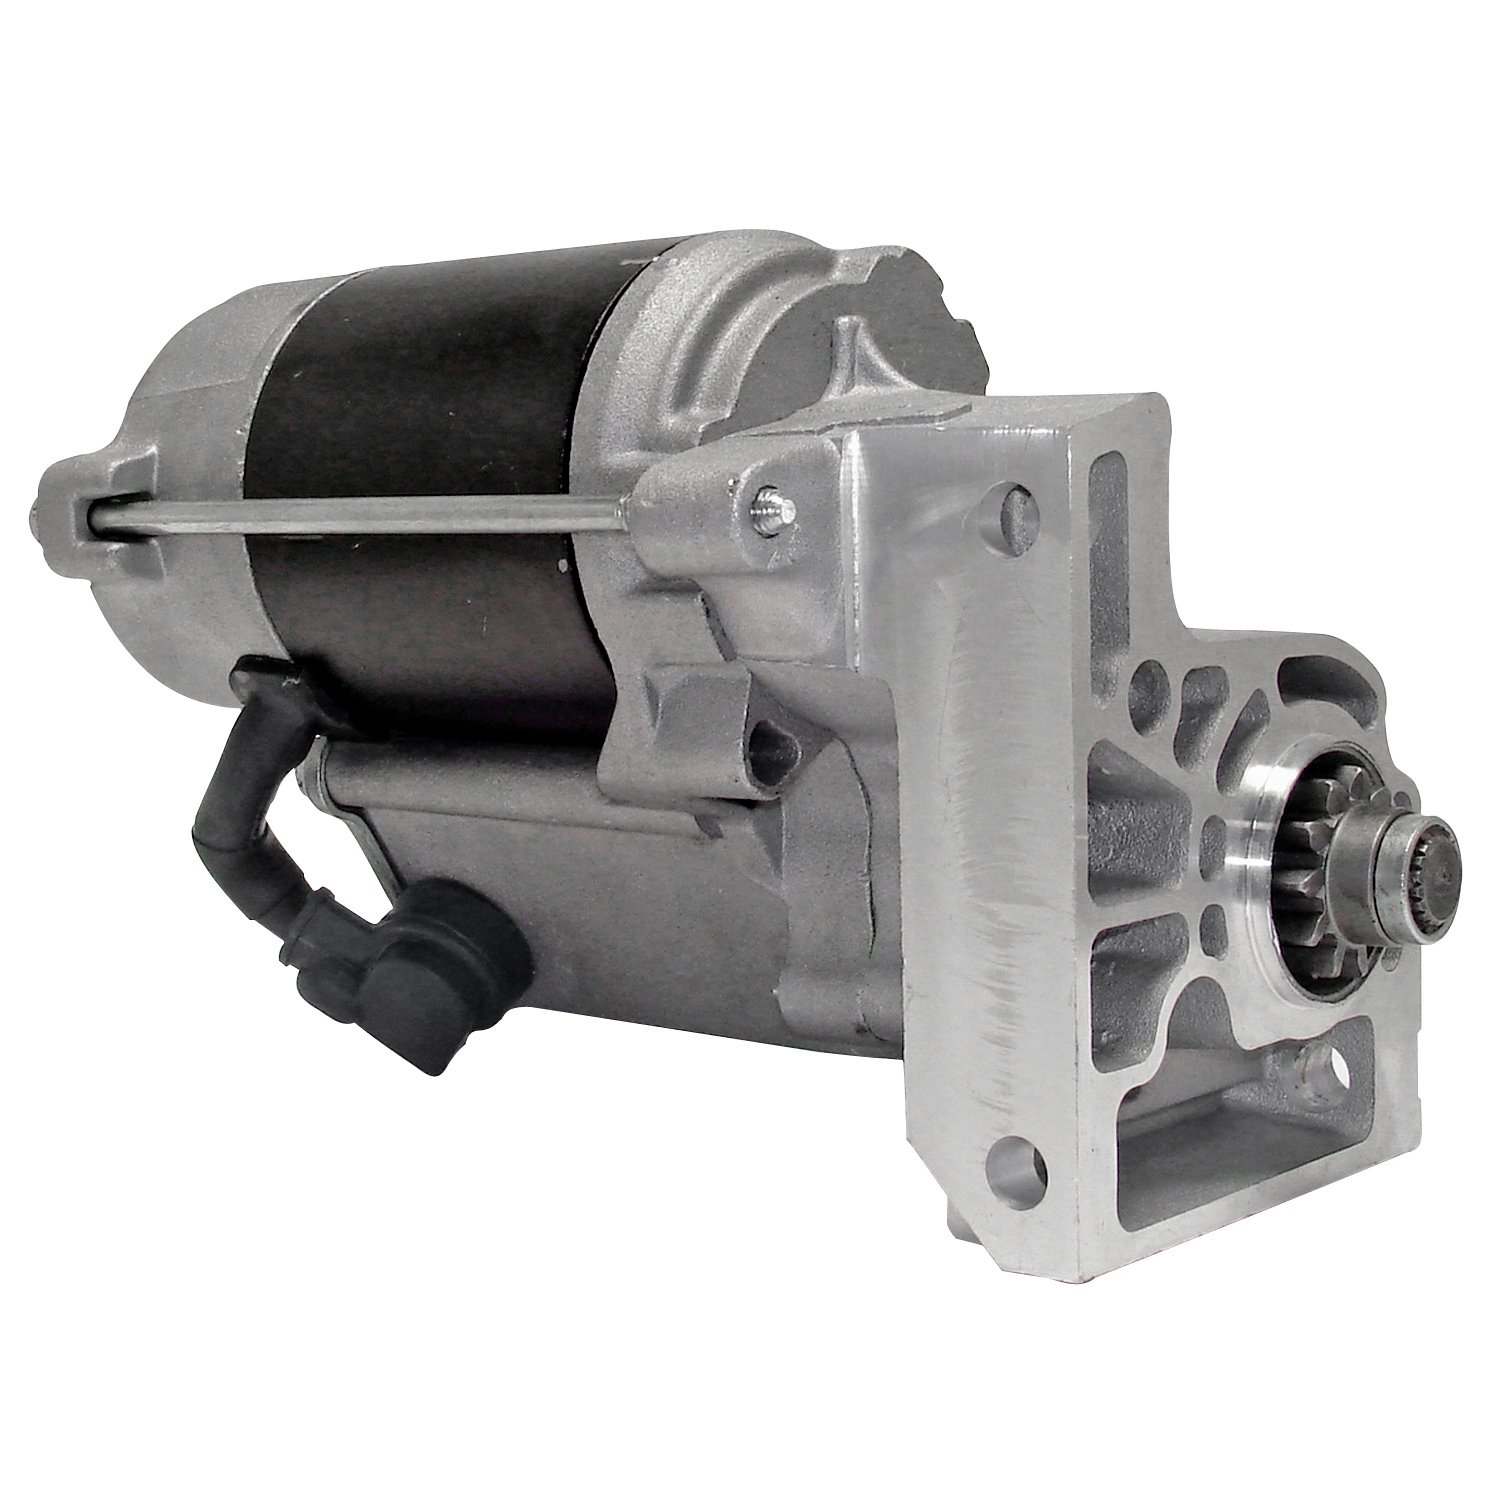 ACDelco 336-1054 Professional Starter, Remanufactured